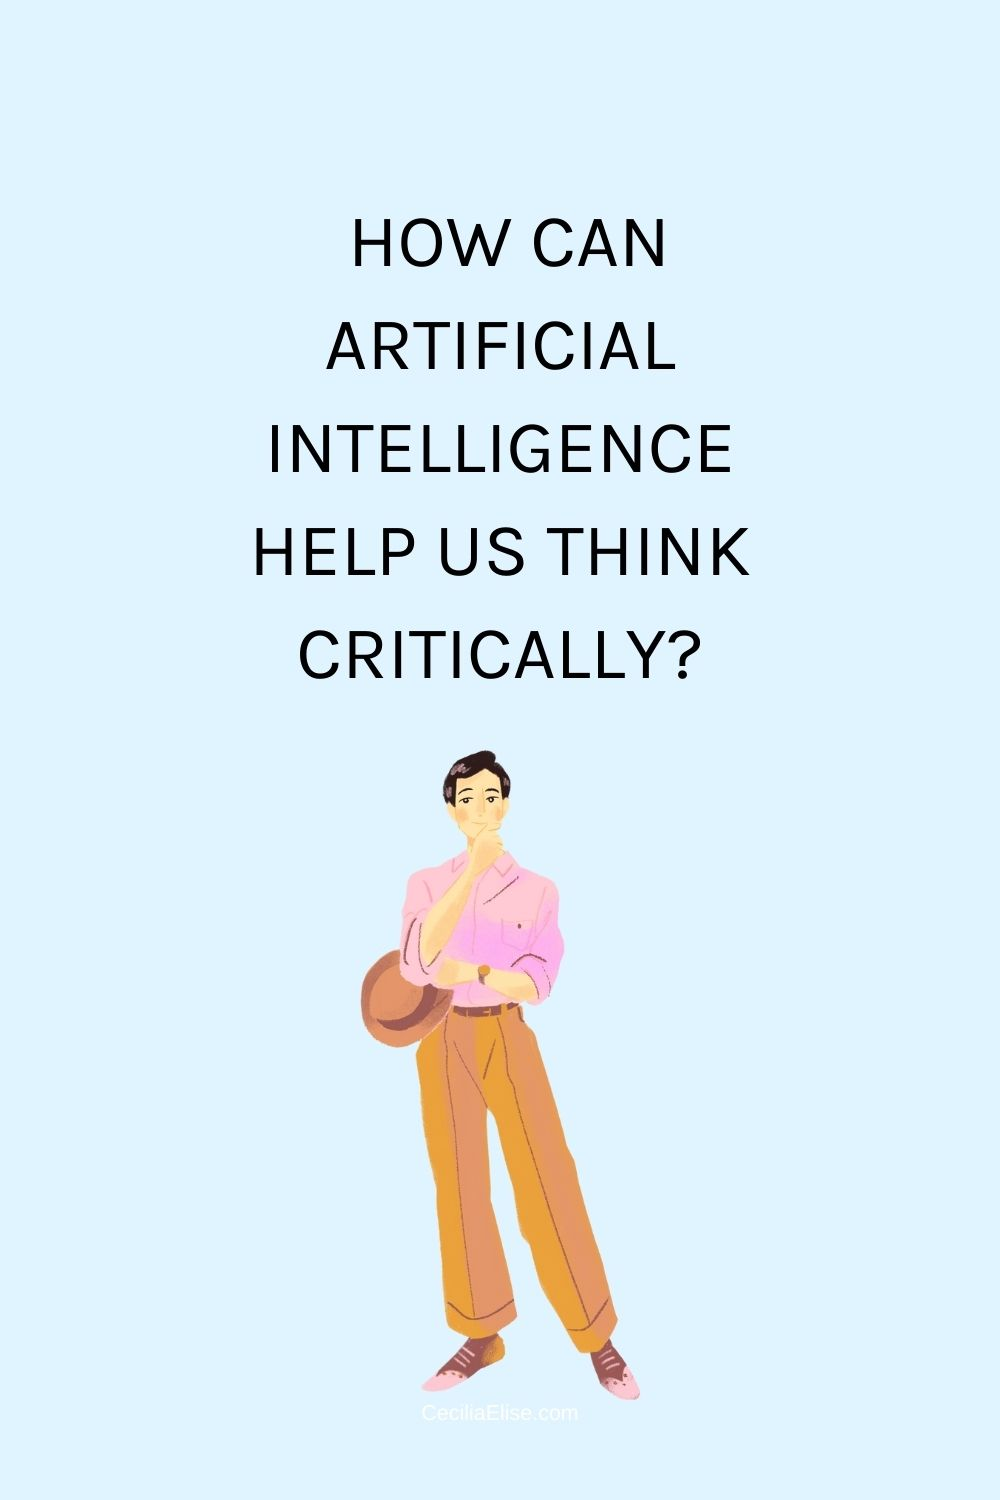 How can artificial intelligence help us think critically